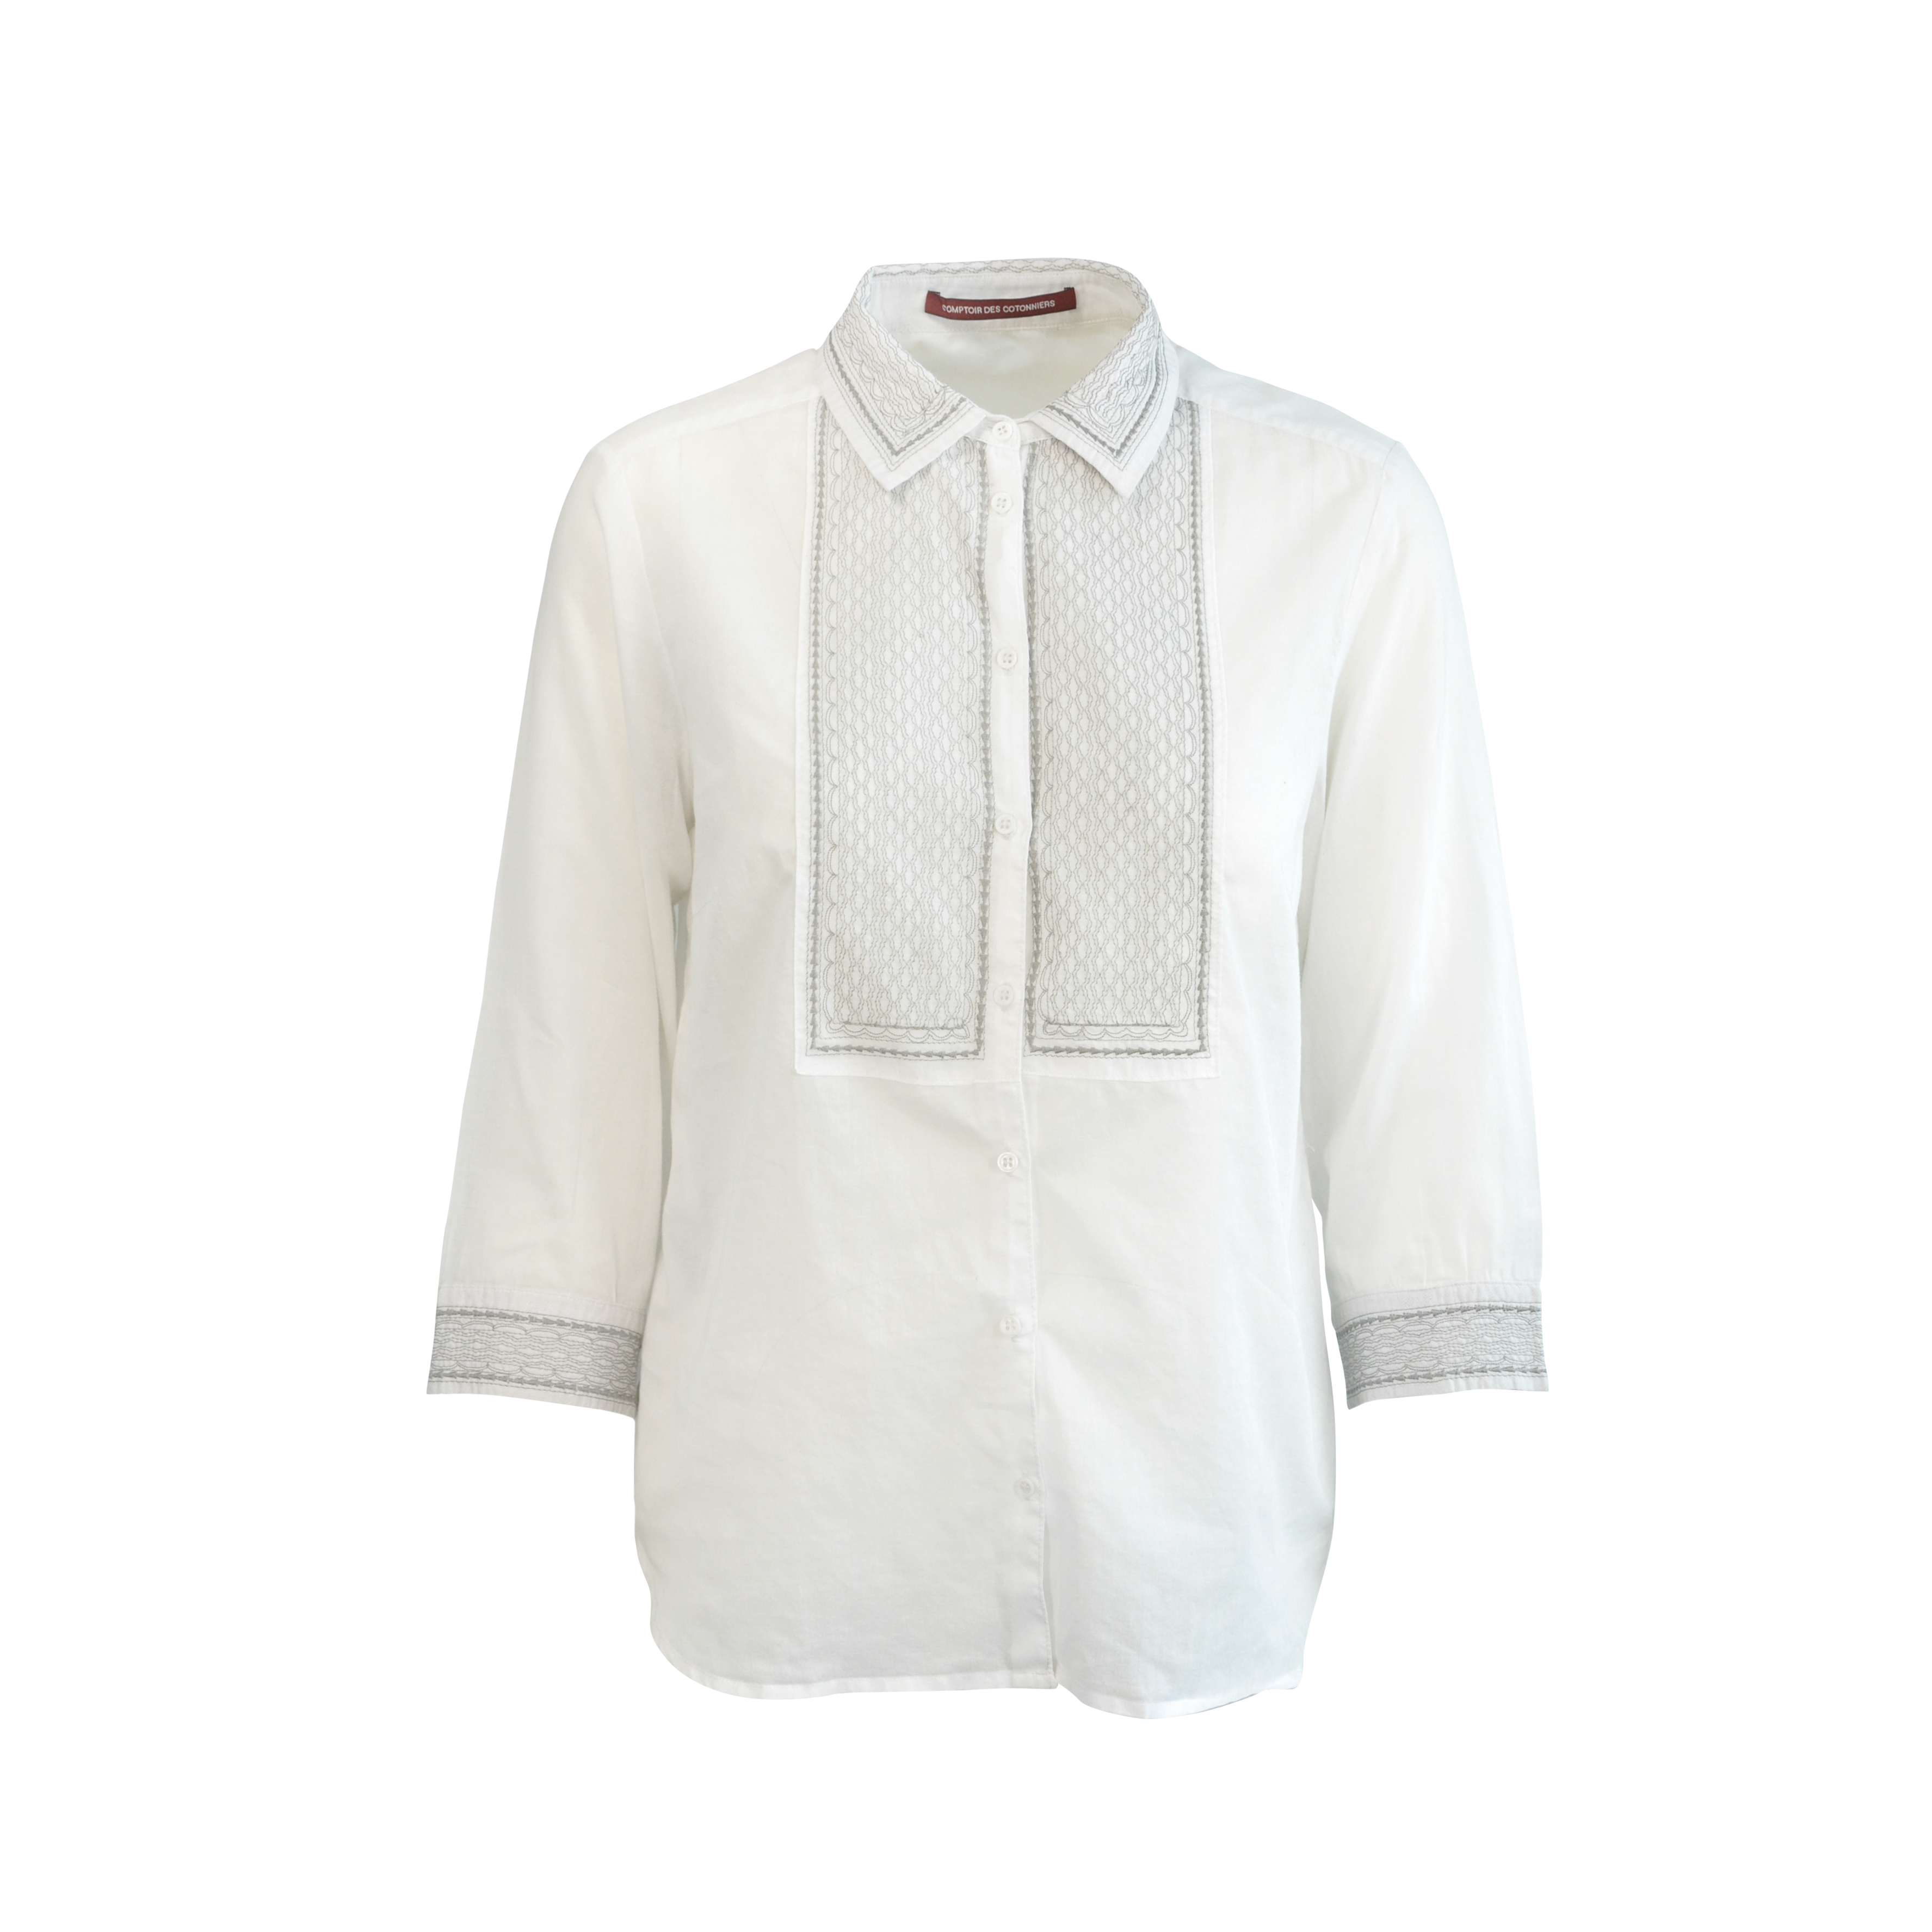 4530ac4dd89089 Authentic Second Hand Comptoir Des Cotonniers Embroidered Blouse  (PSS-125-00003)